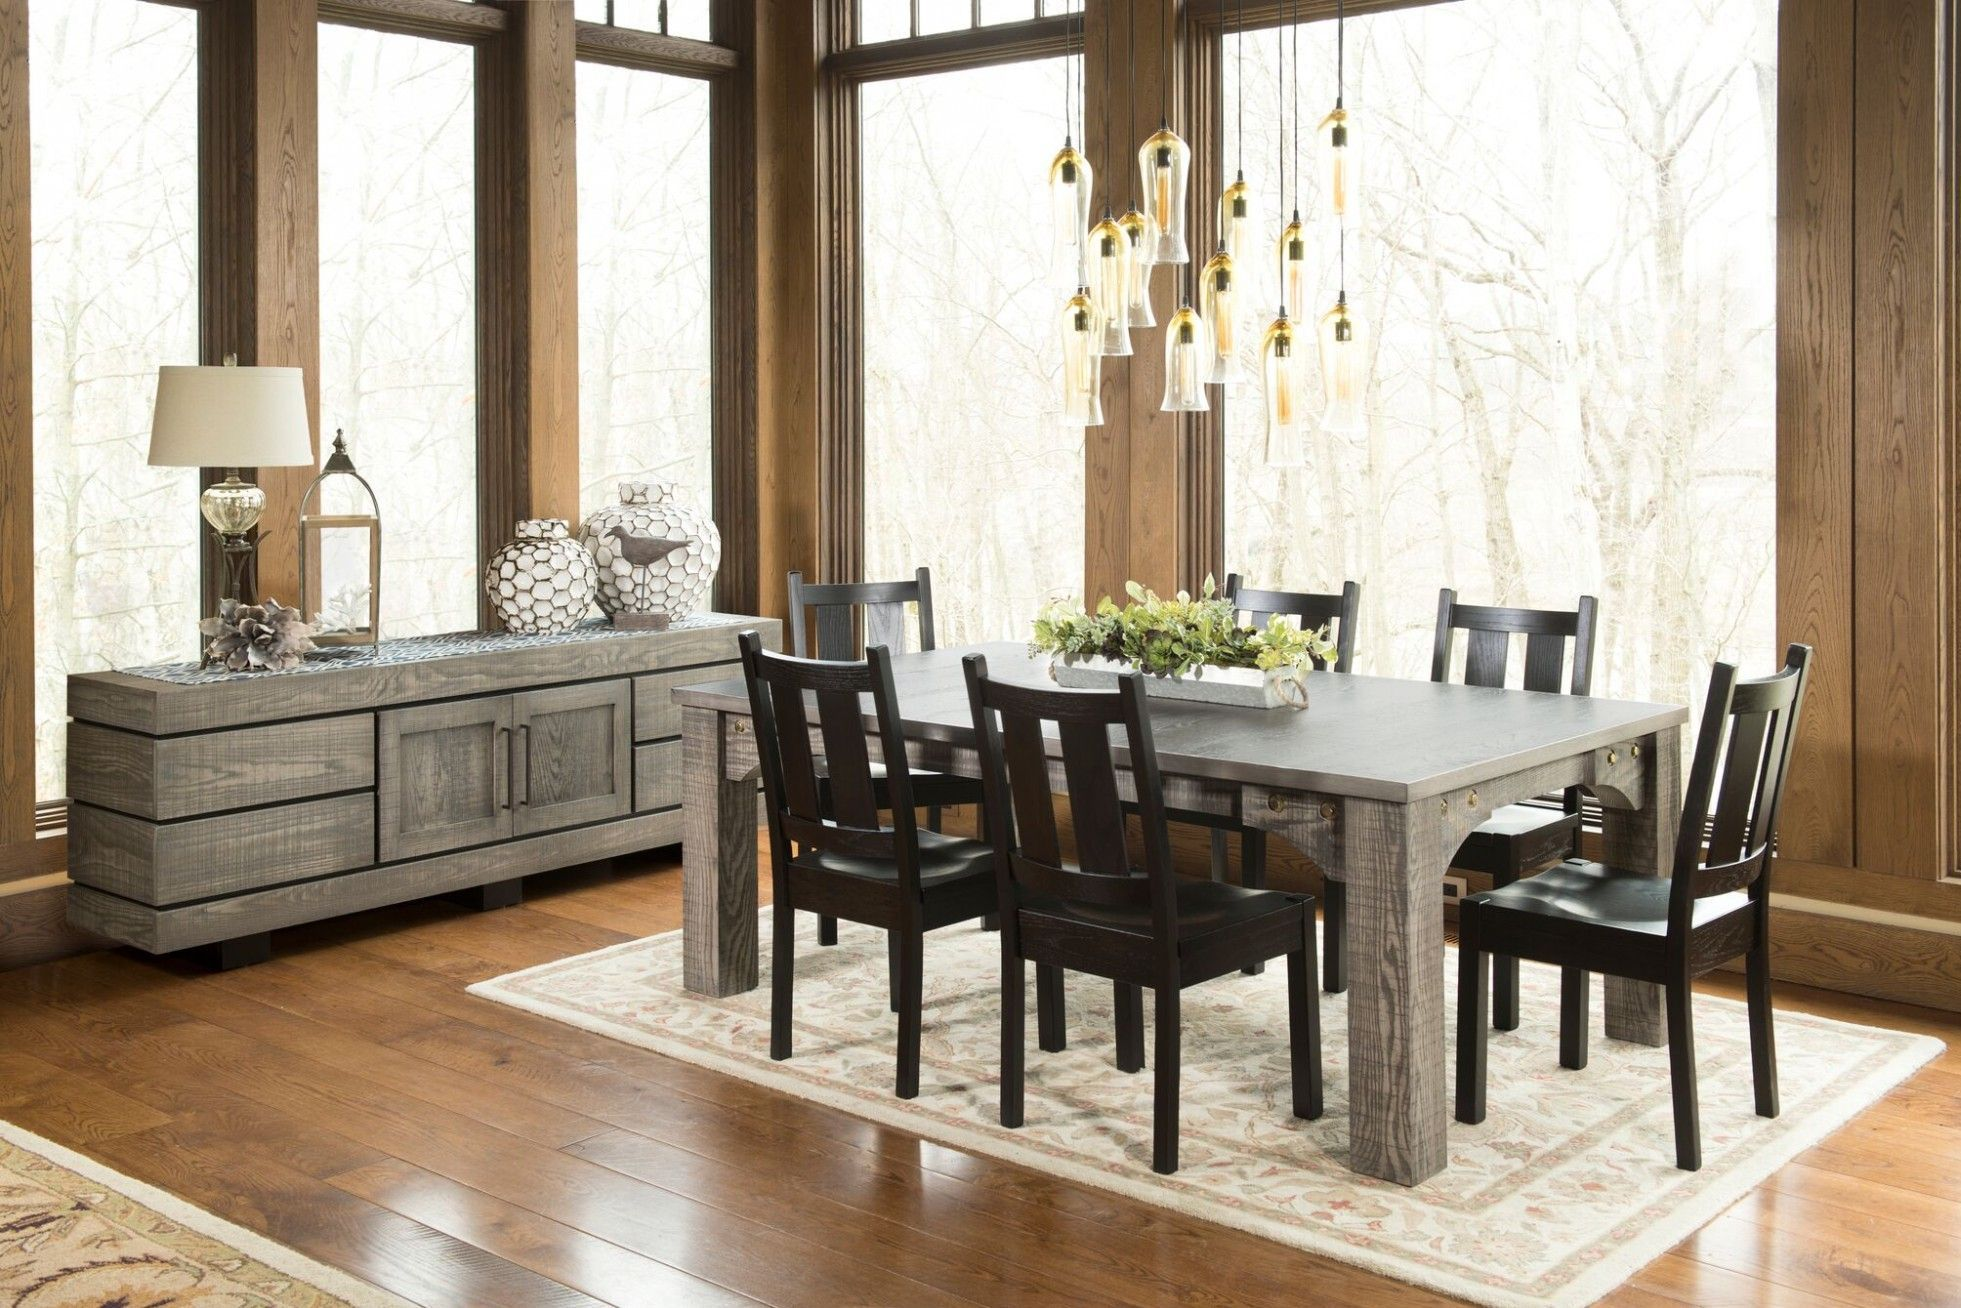 Branson Dining with Upholstered Chairs, Dining Set